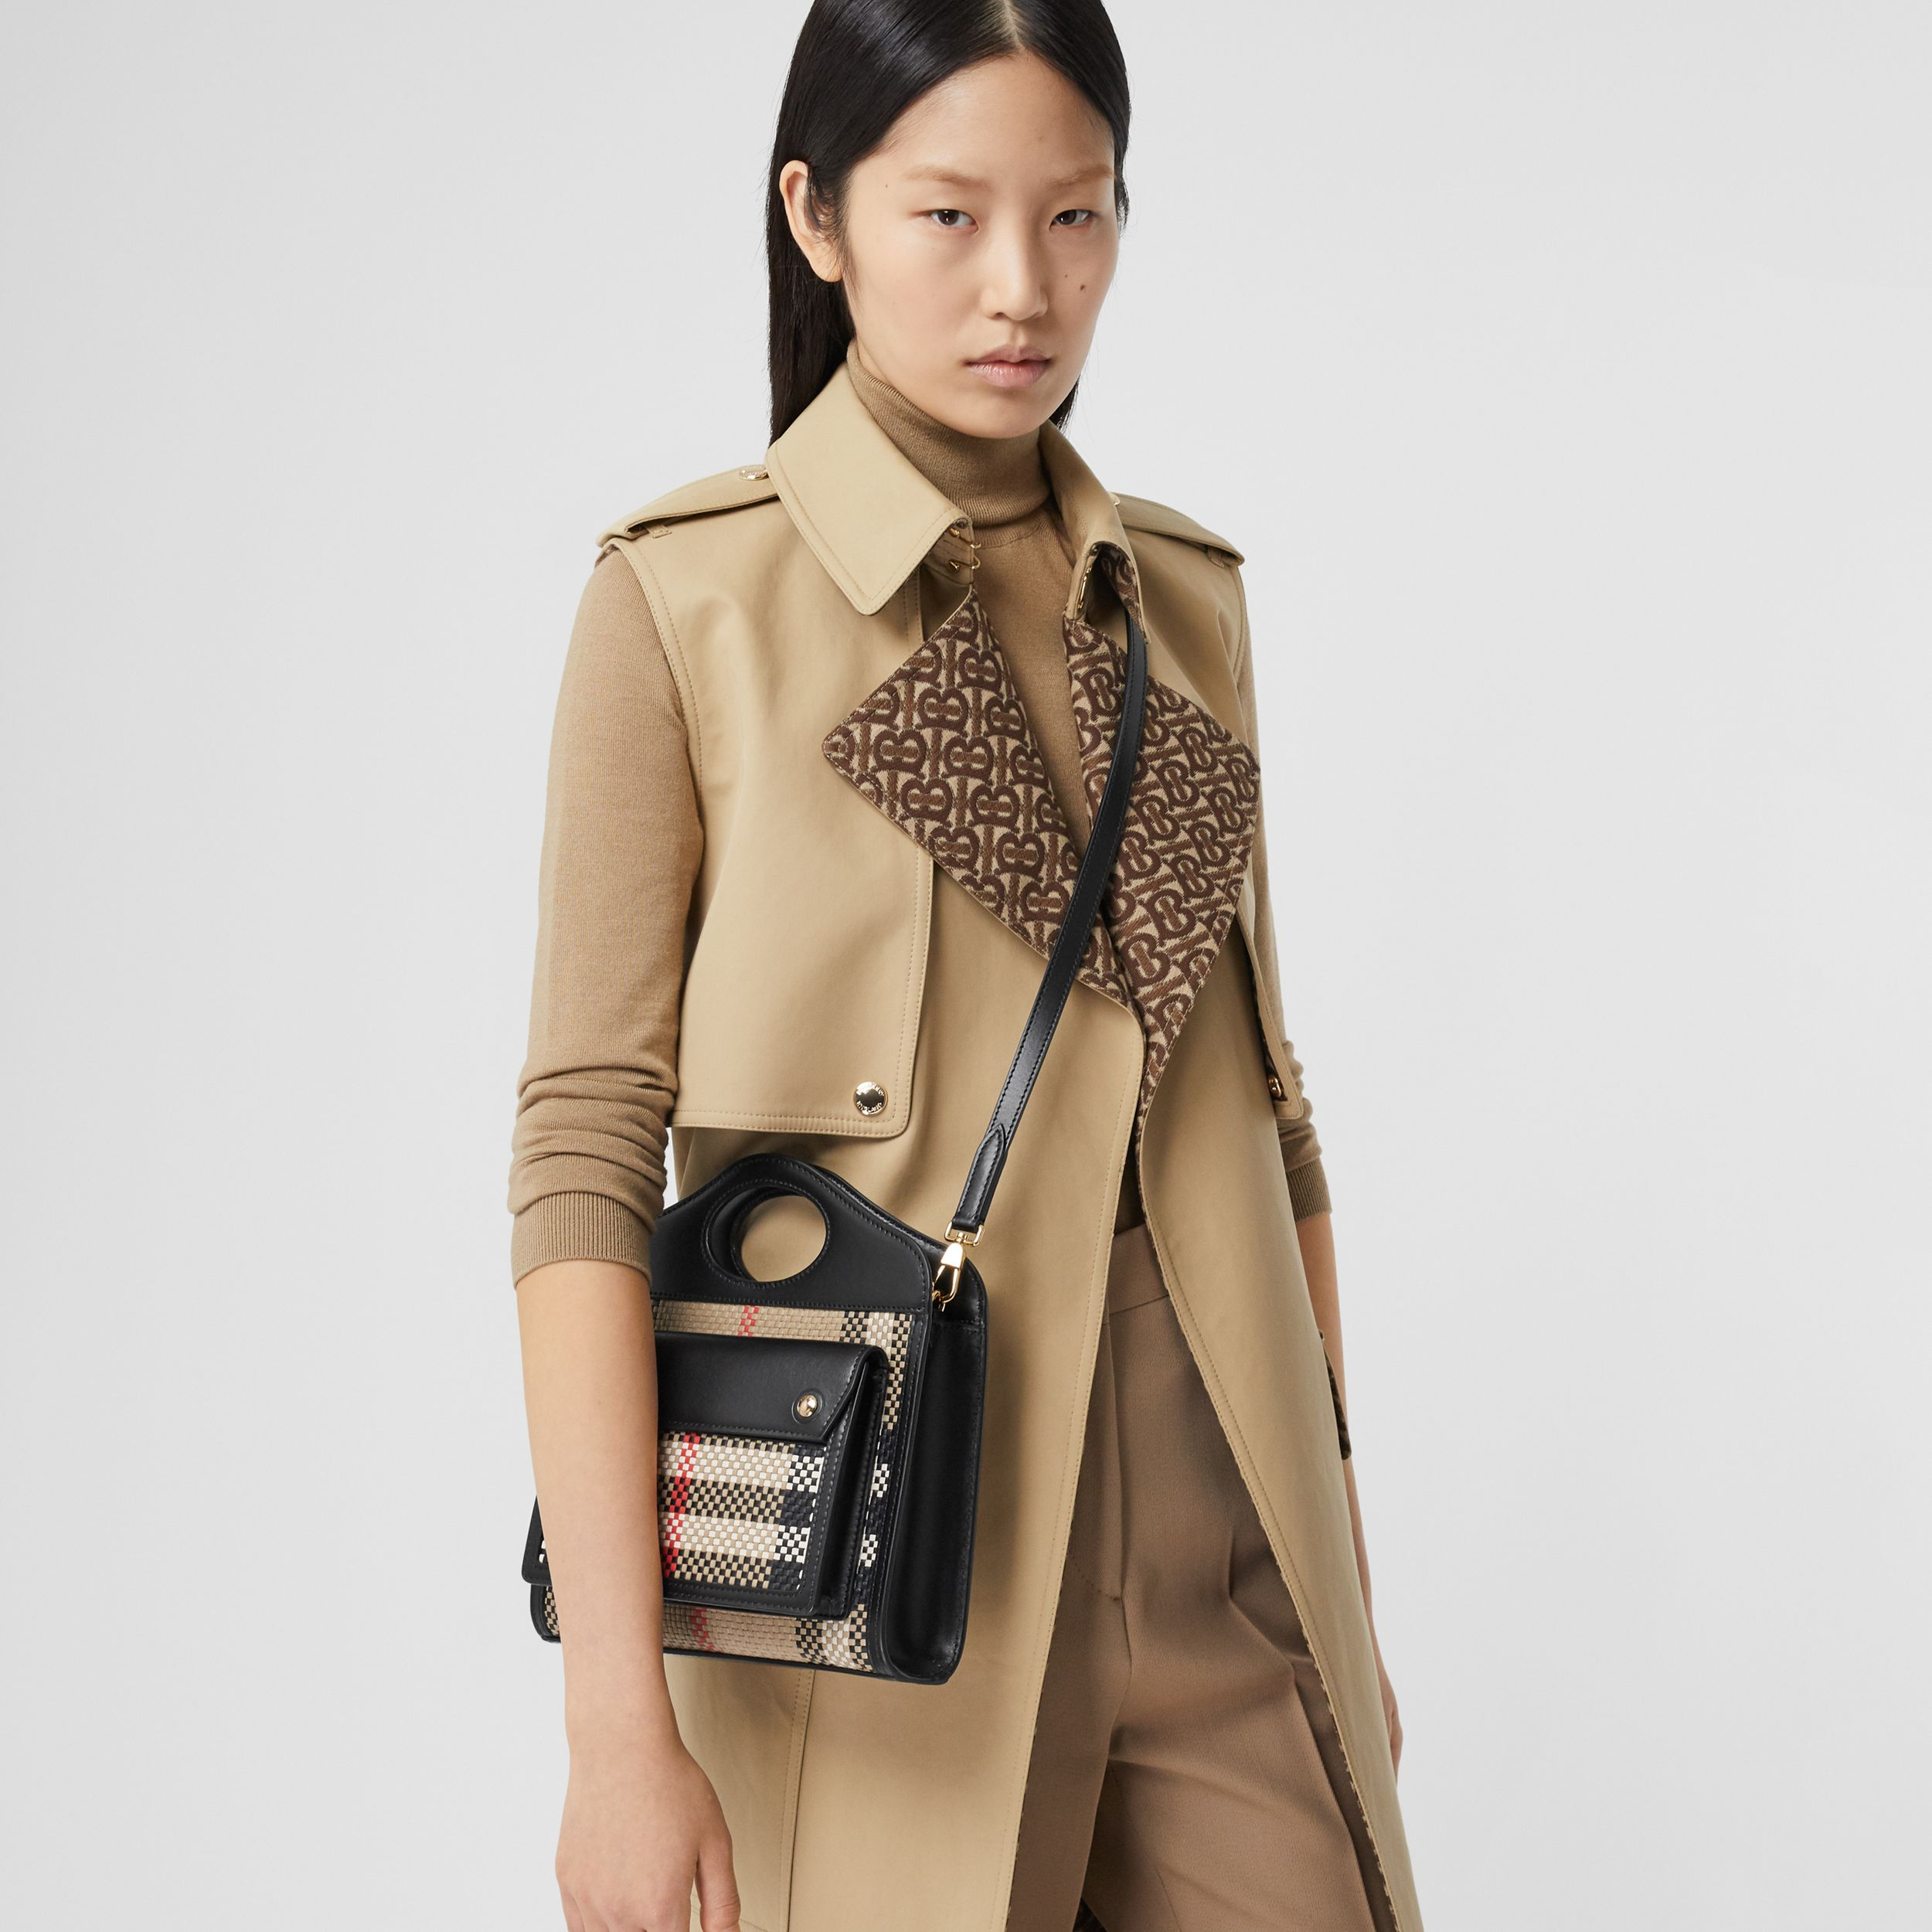 Mini Latticed Leather Pocket Bag in Archive Beige/black - Women | Burberry Hong Kong S.A.R. - 3